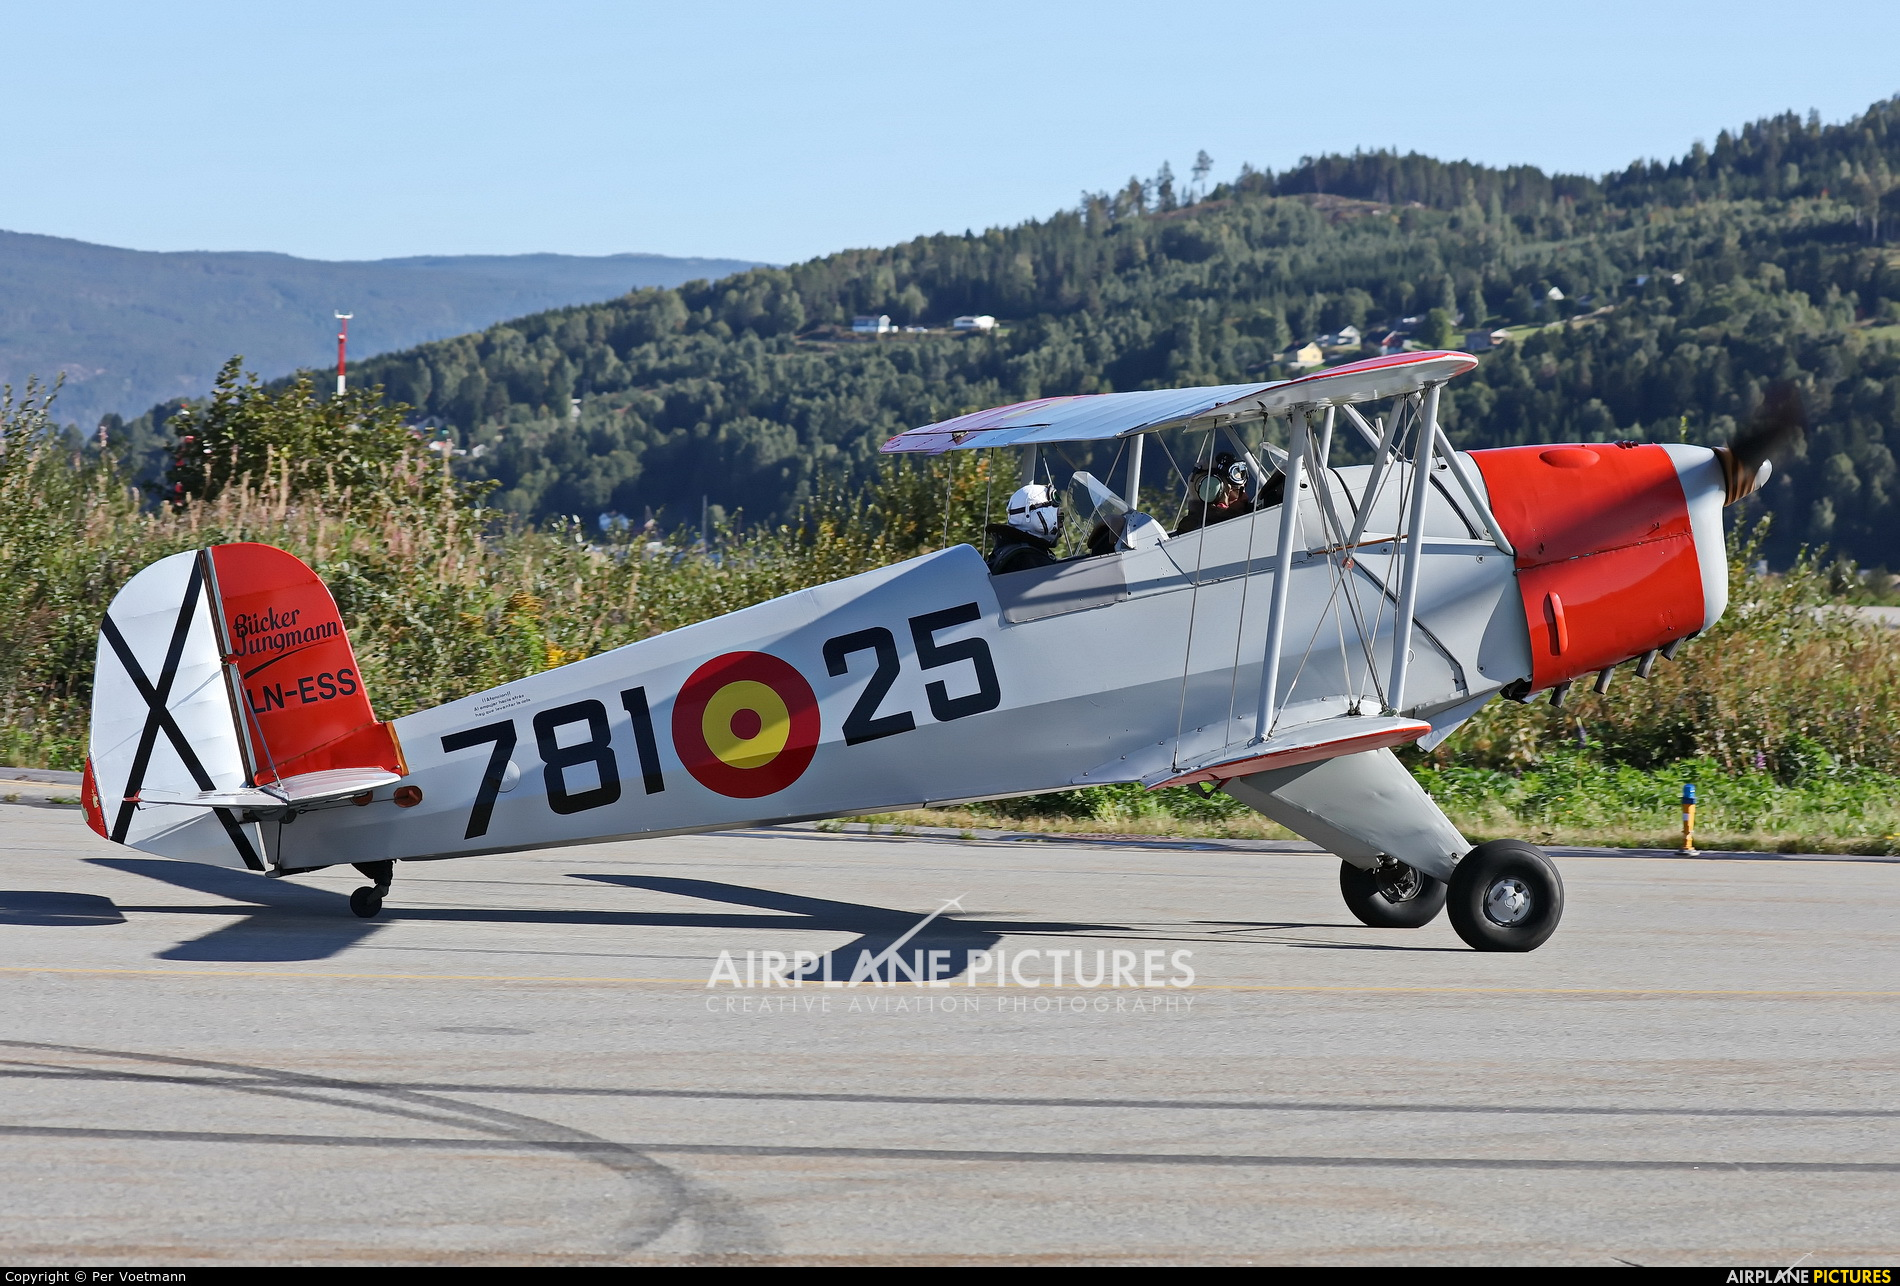 Private LN-ESS aircraft at Notodden lufthavn